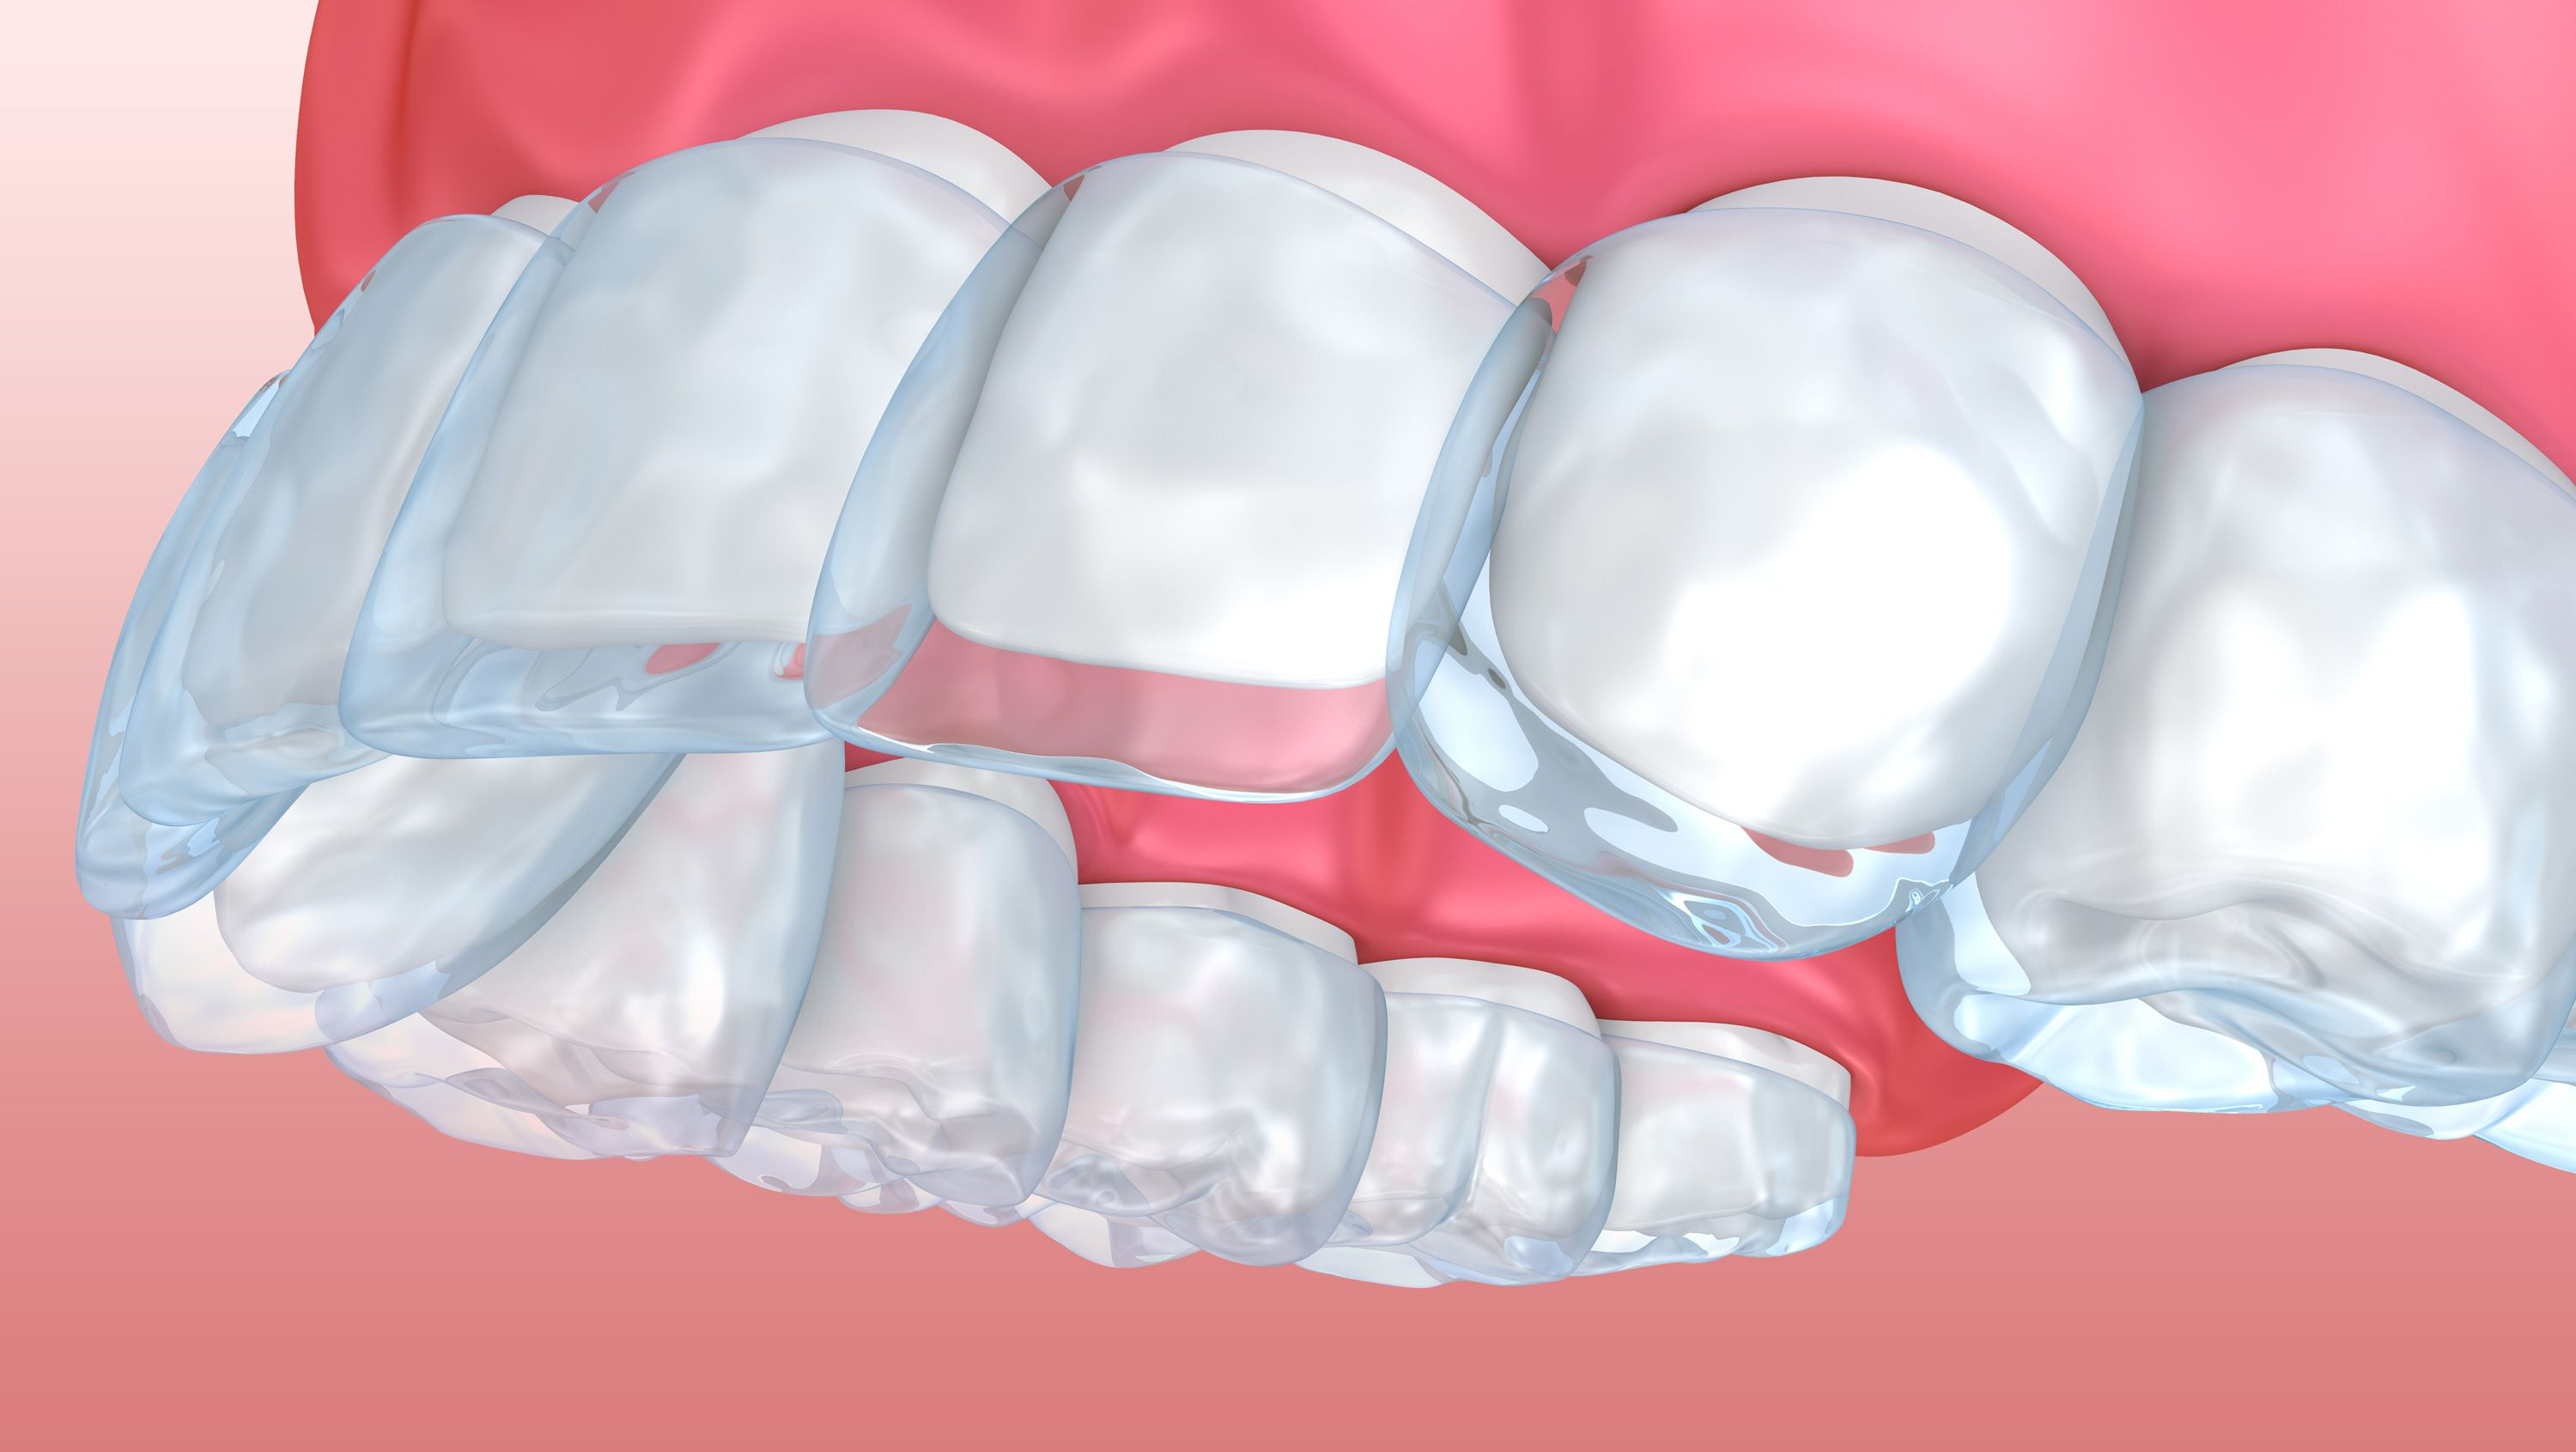 Digital image of Invisalign® tray on teeth